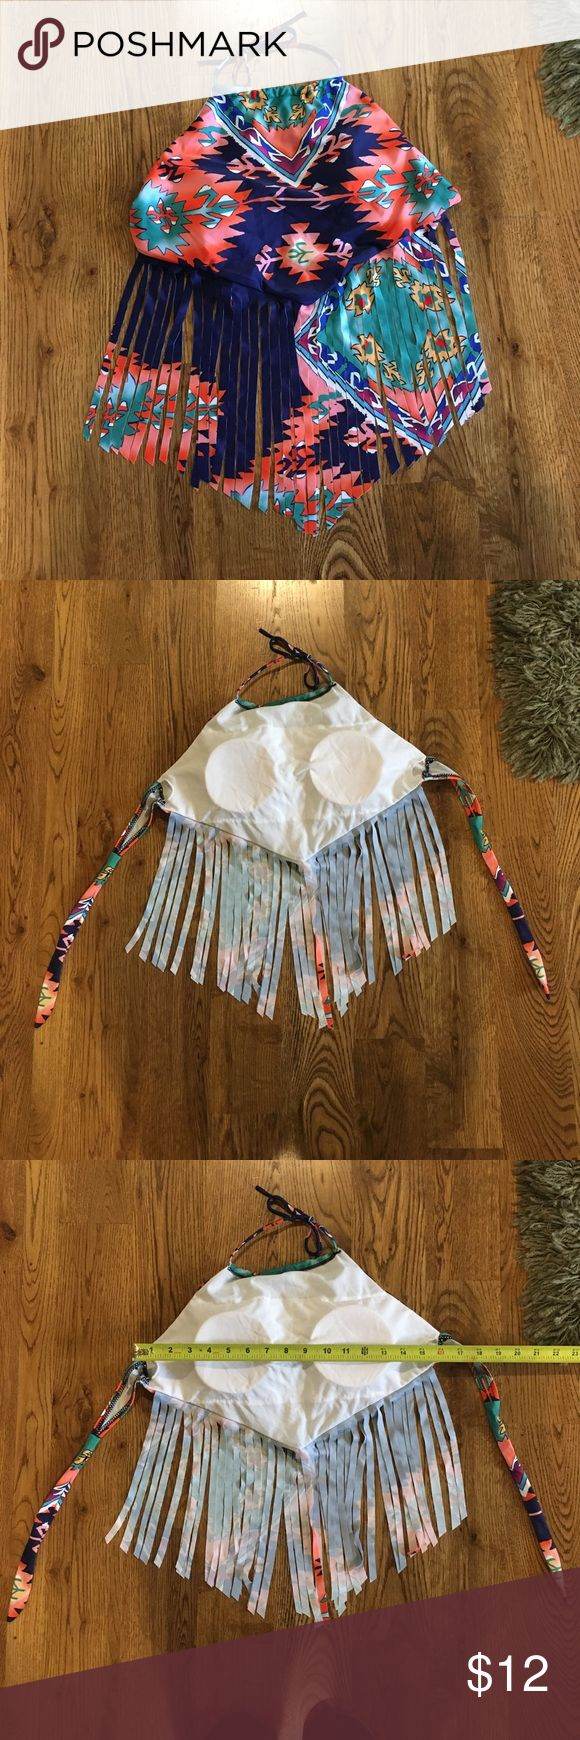 Fringed tribal/festival bathing suit top Never worn, size small but fits more like a large fringe bathing suit top. Too big for me. Removable pads. Would pair great with cut offs or some orange bathing suit bottoms 🍊 would love to answer any questions and don't forget the offer button below 👇🏼 Swim Bikinis